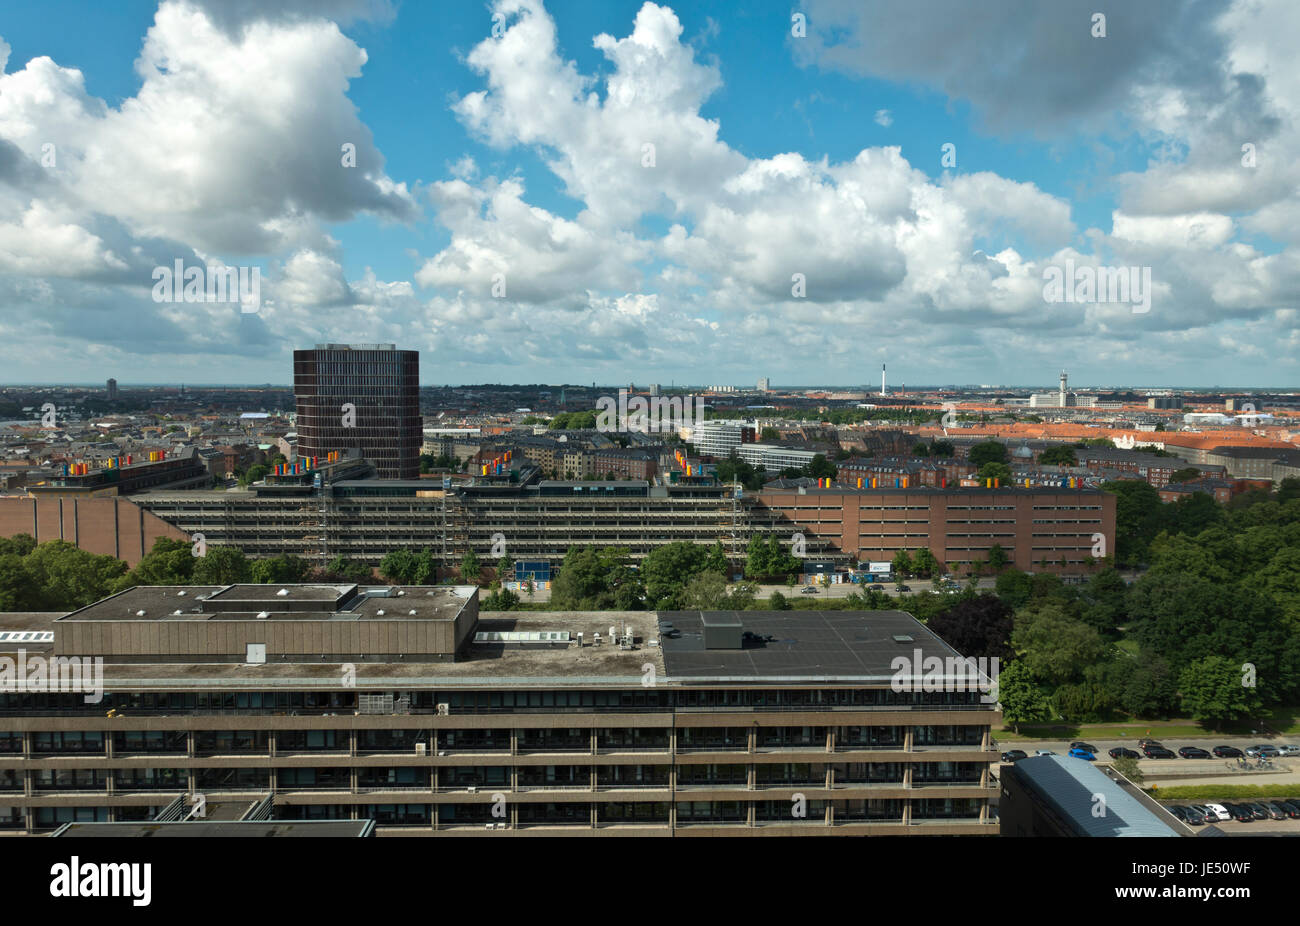 View from 16th floor in the National Hospital, Copenhagen. The Panum Institute, the Maersk Tower. Then Nørrebro, - Stock Image